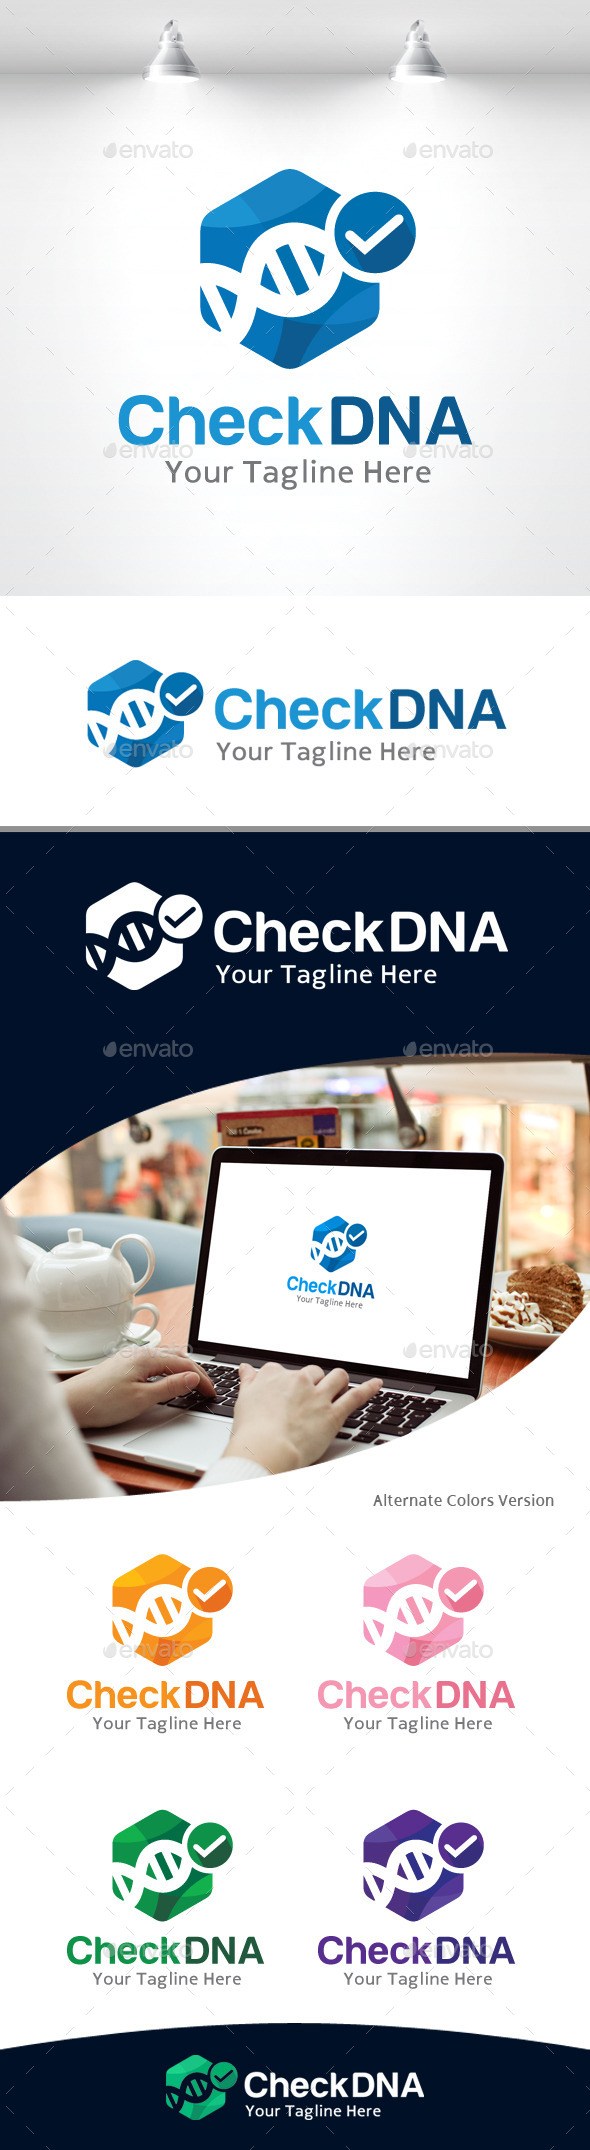 GraphicRiver Check DNA logo 11105482